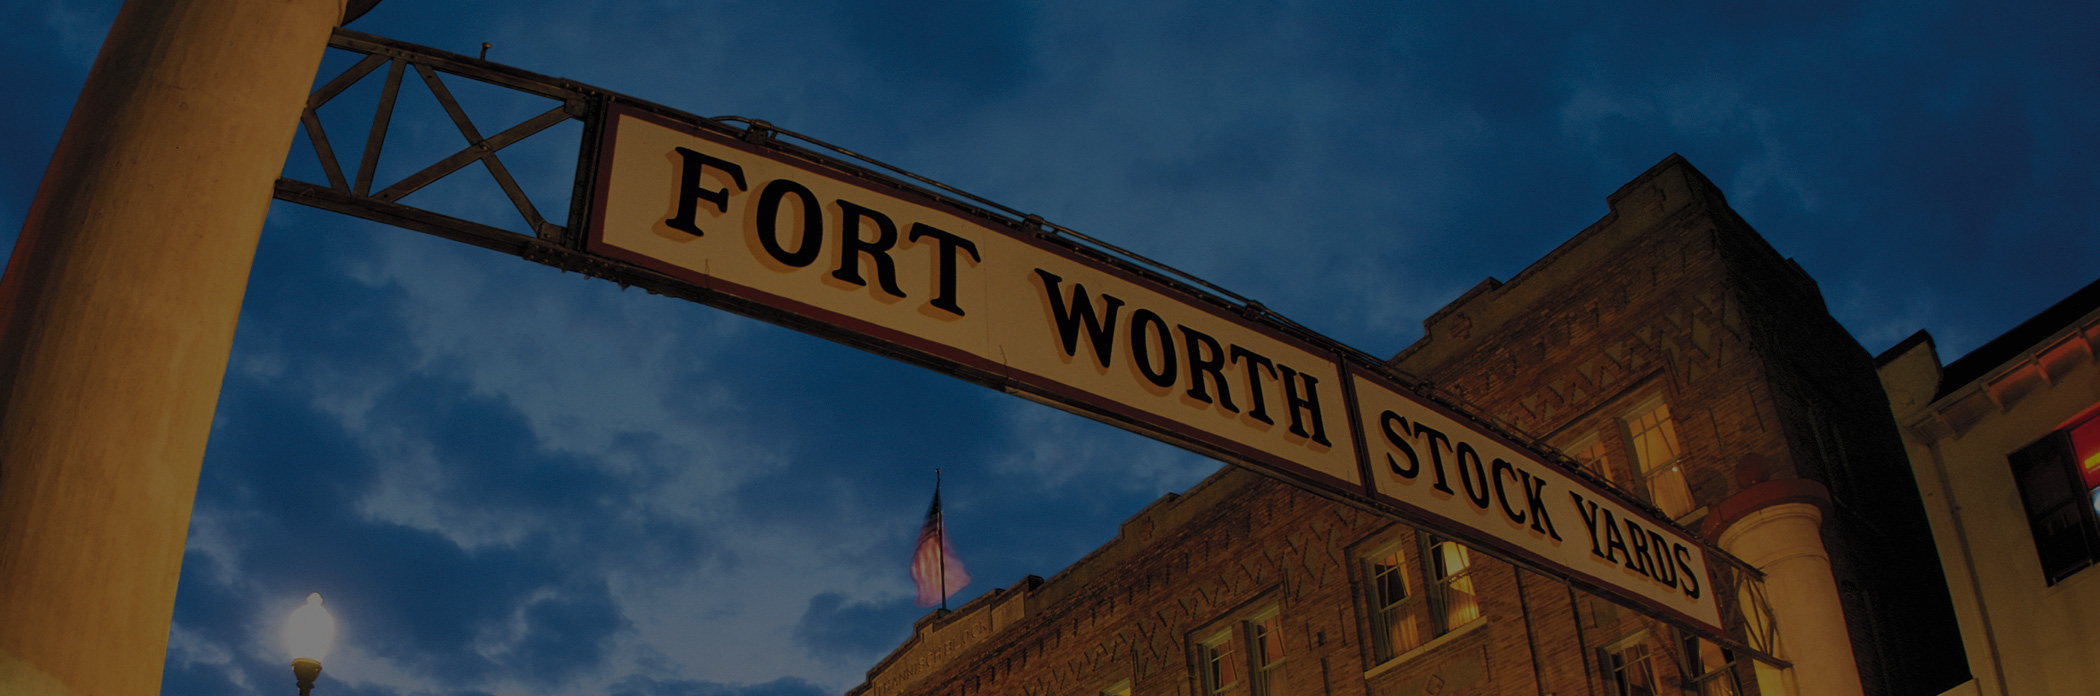 Top 10 Fort Worth Marketing Companies with Reviews